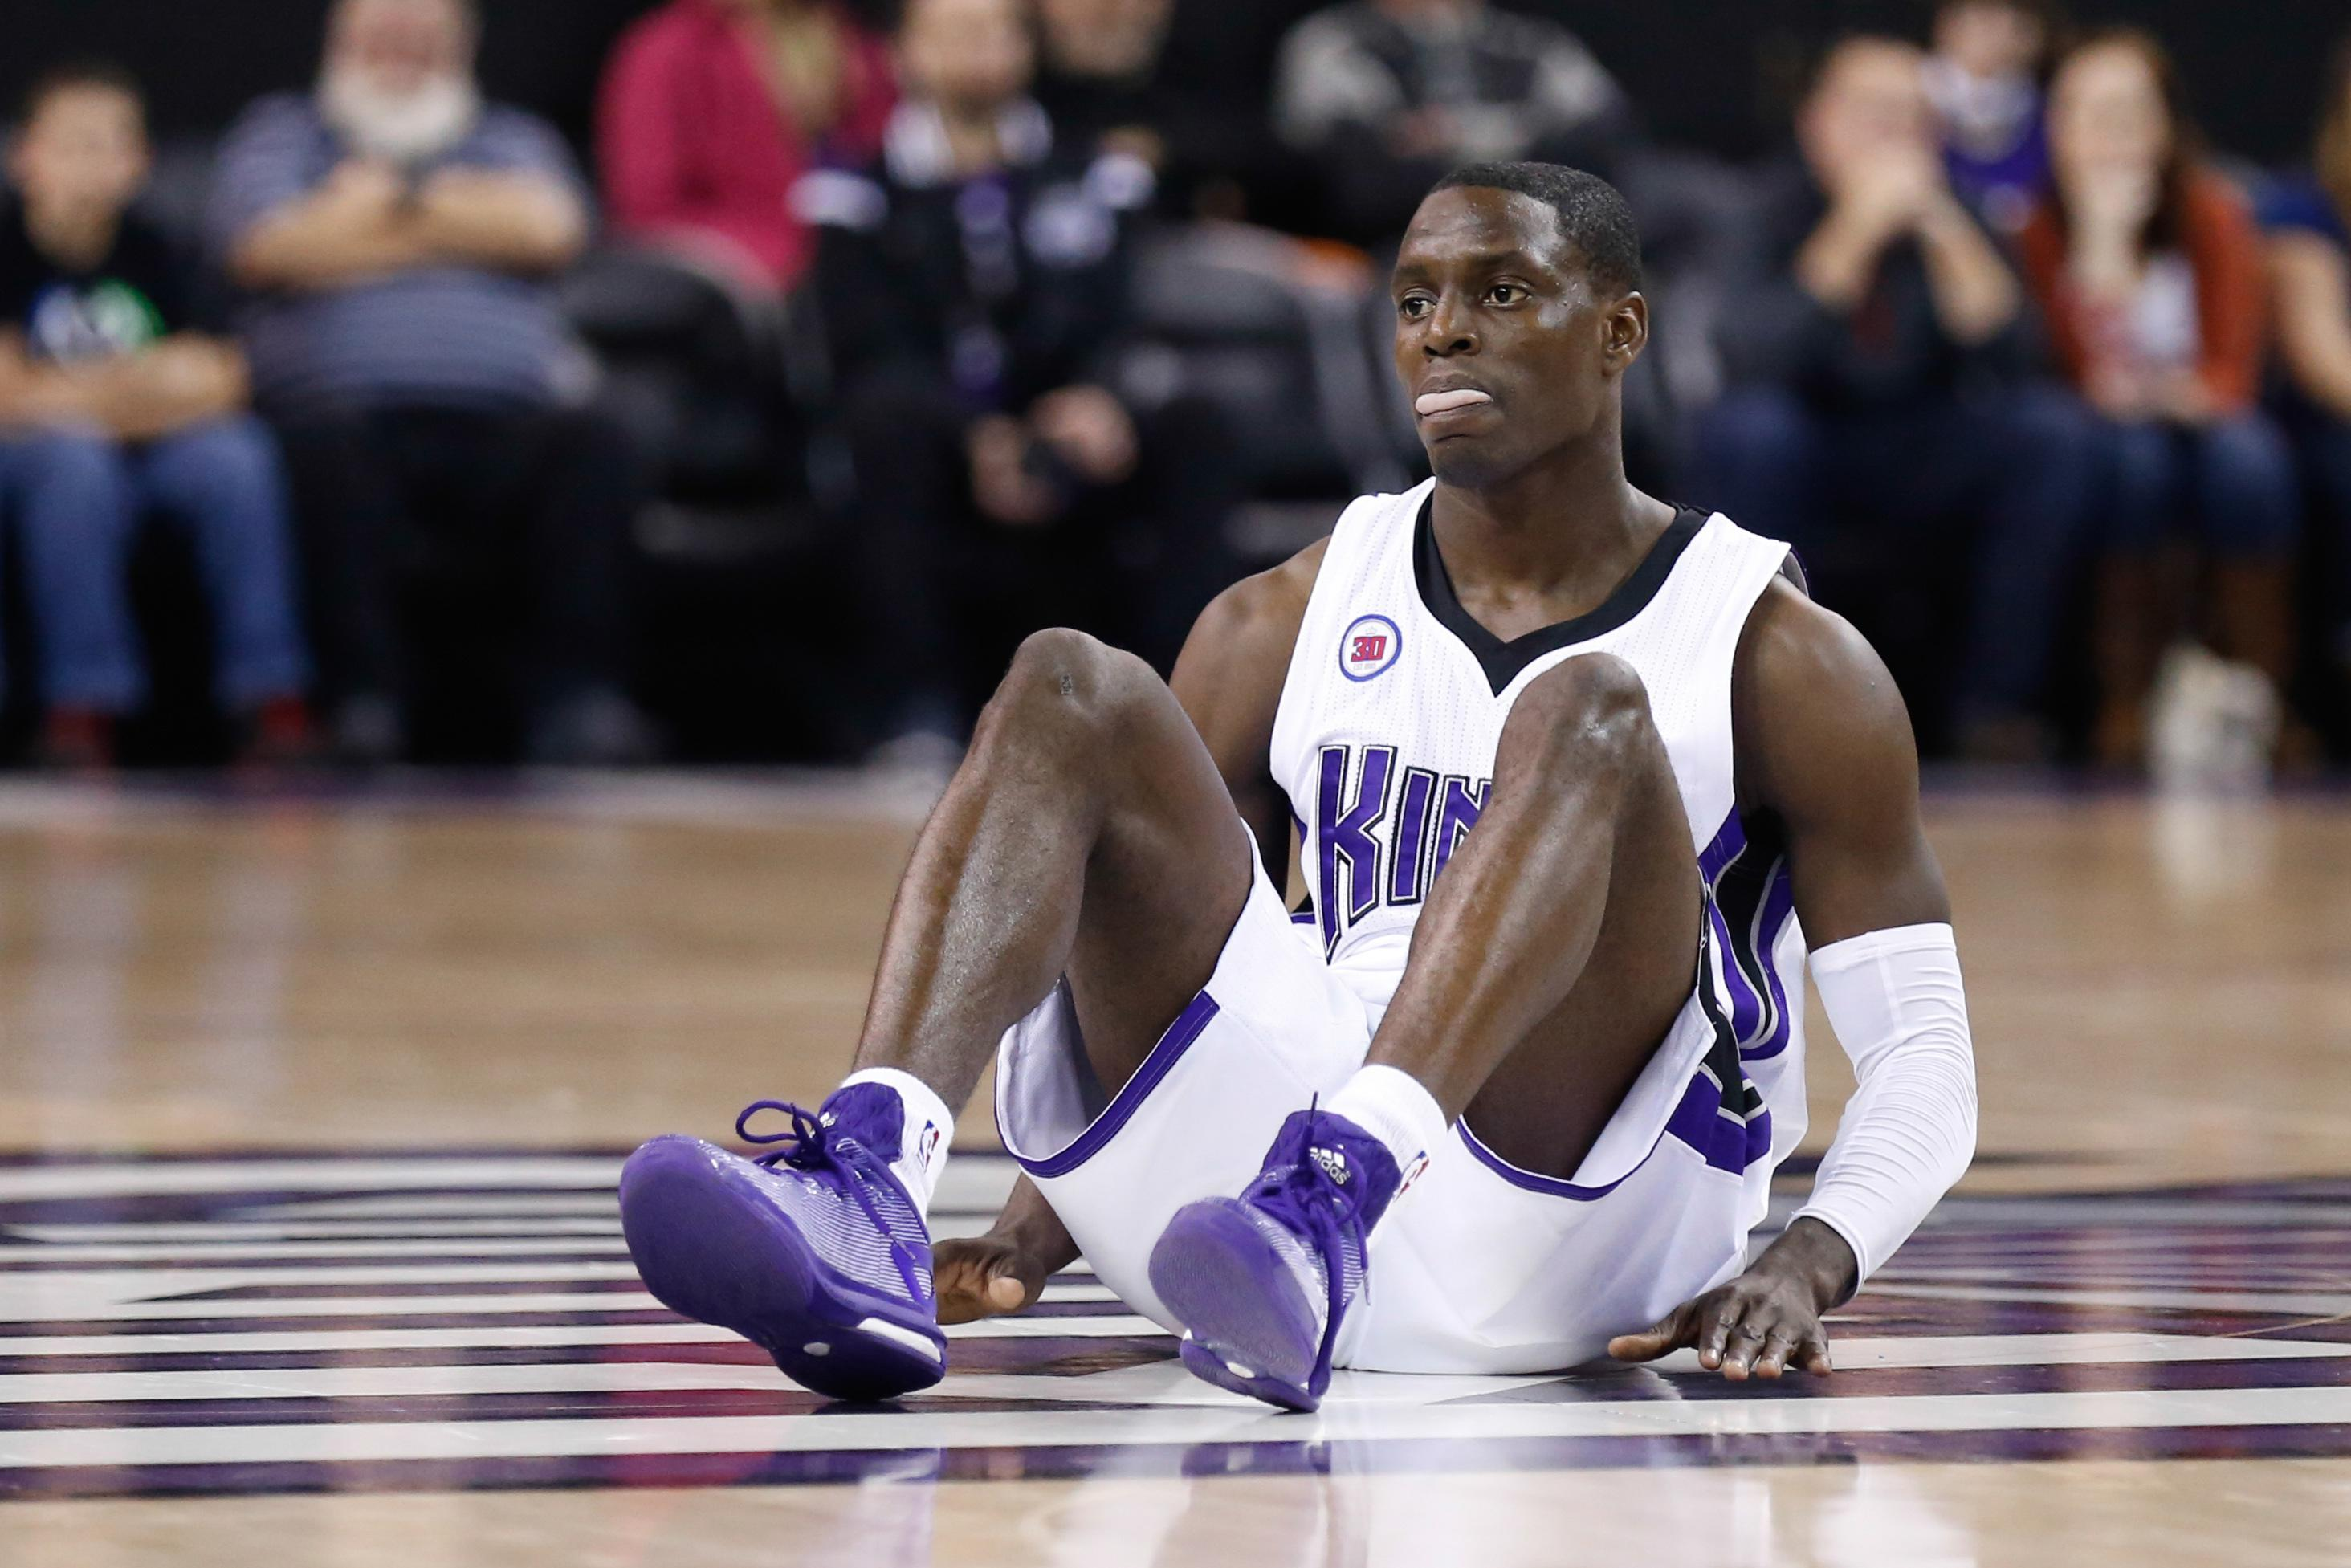 Sources: Darren Collison's surgery expected to end his season with Kings